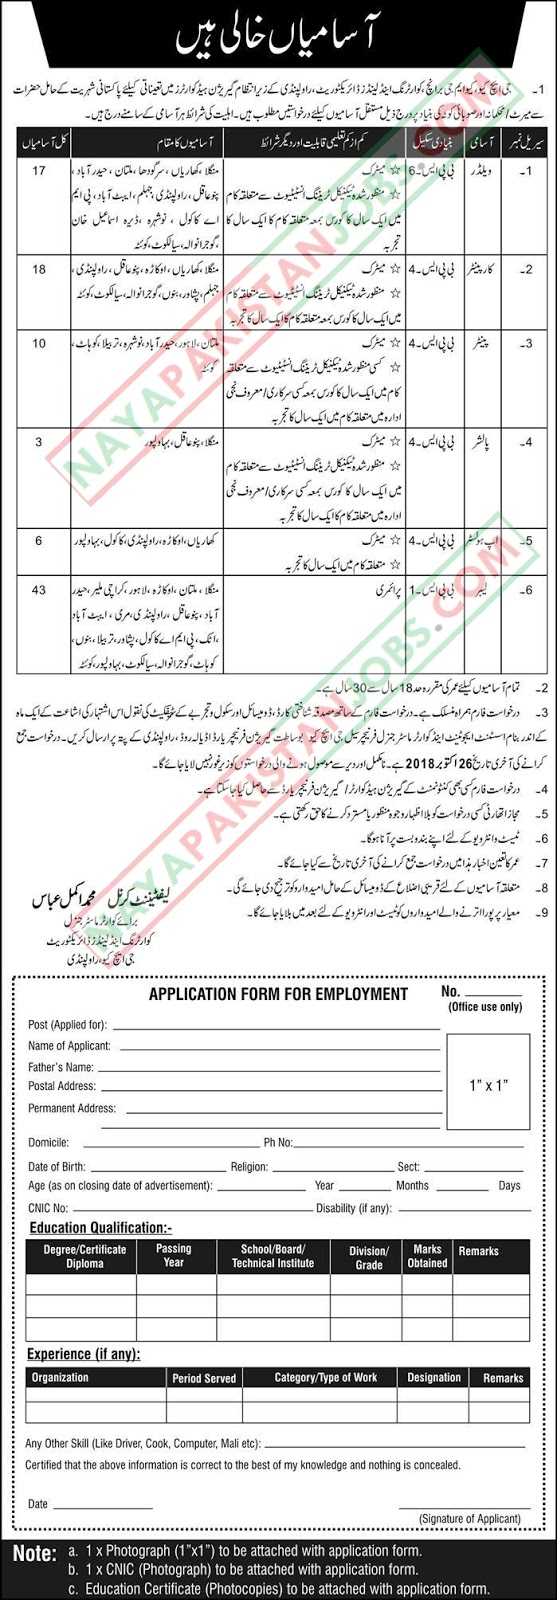 Latest Vacancies Announced in Pakistan Army GHQ Rawalpindi 26 September 2018 Application Form Download - Naya Pak Jobs